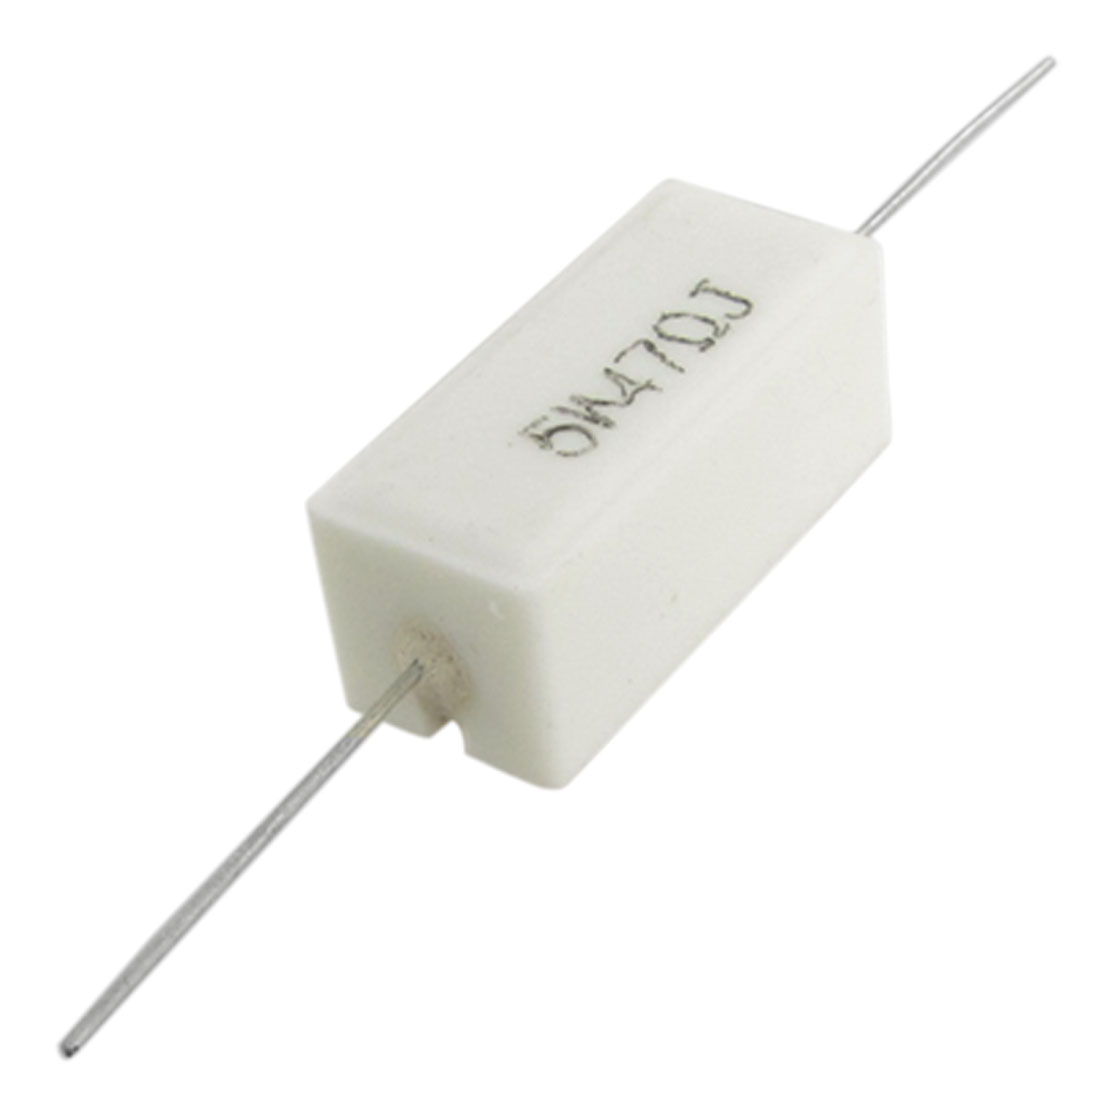 10 Pcs 5W 47 Ohm 5% Axial Lead Ceramic Cement Resistors